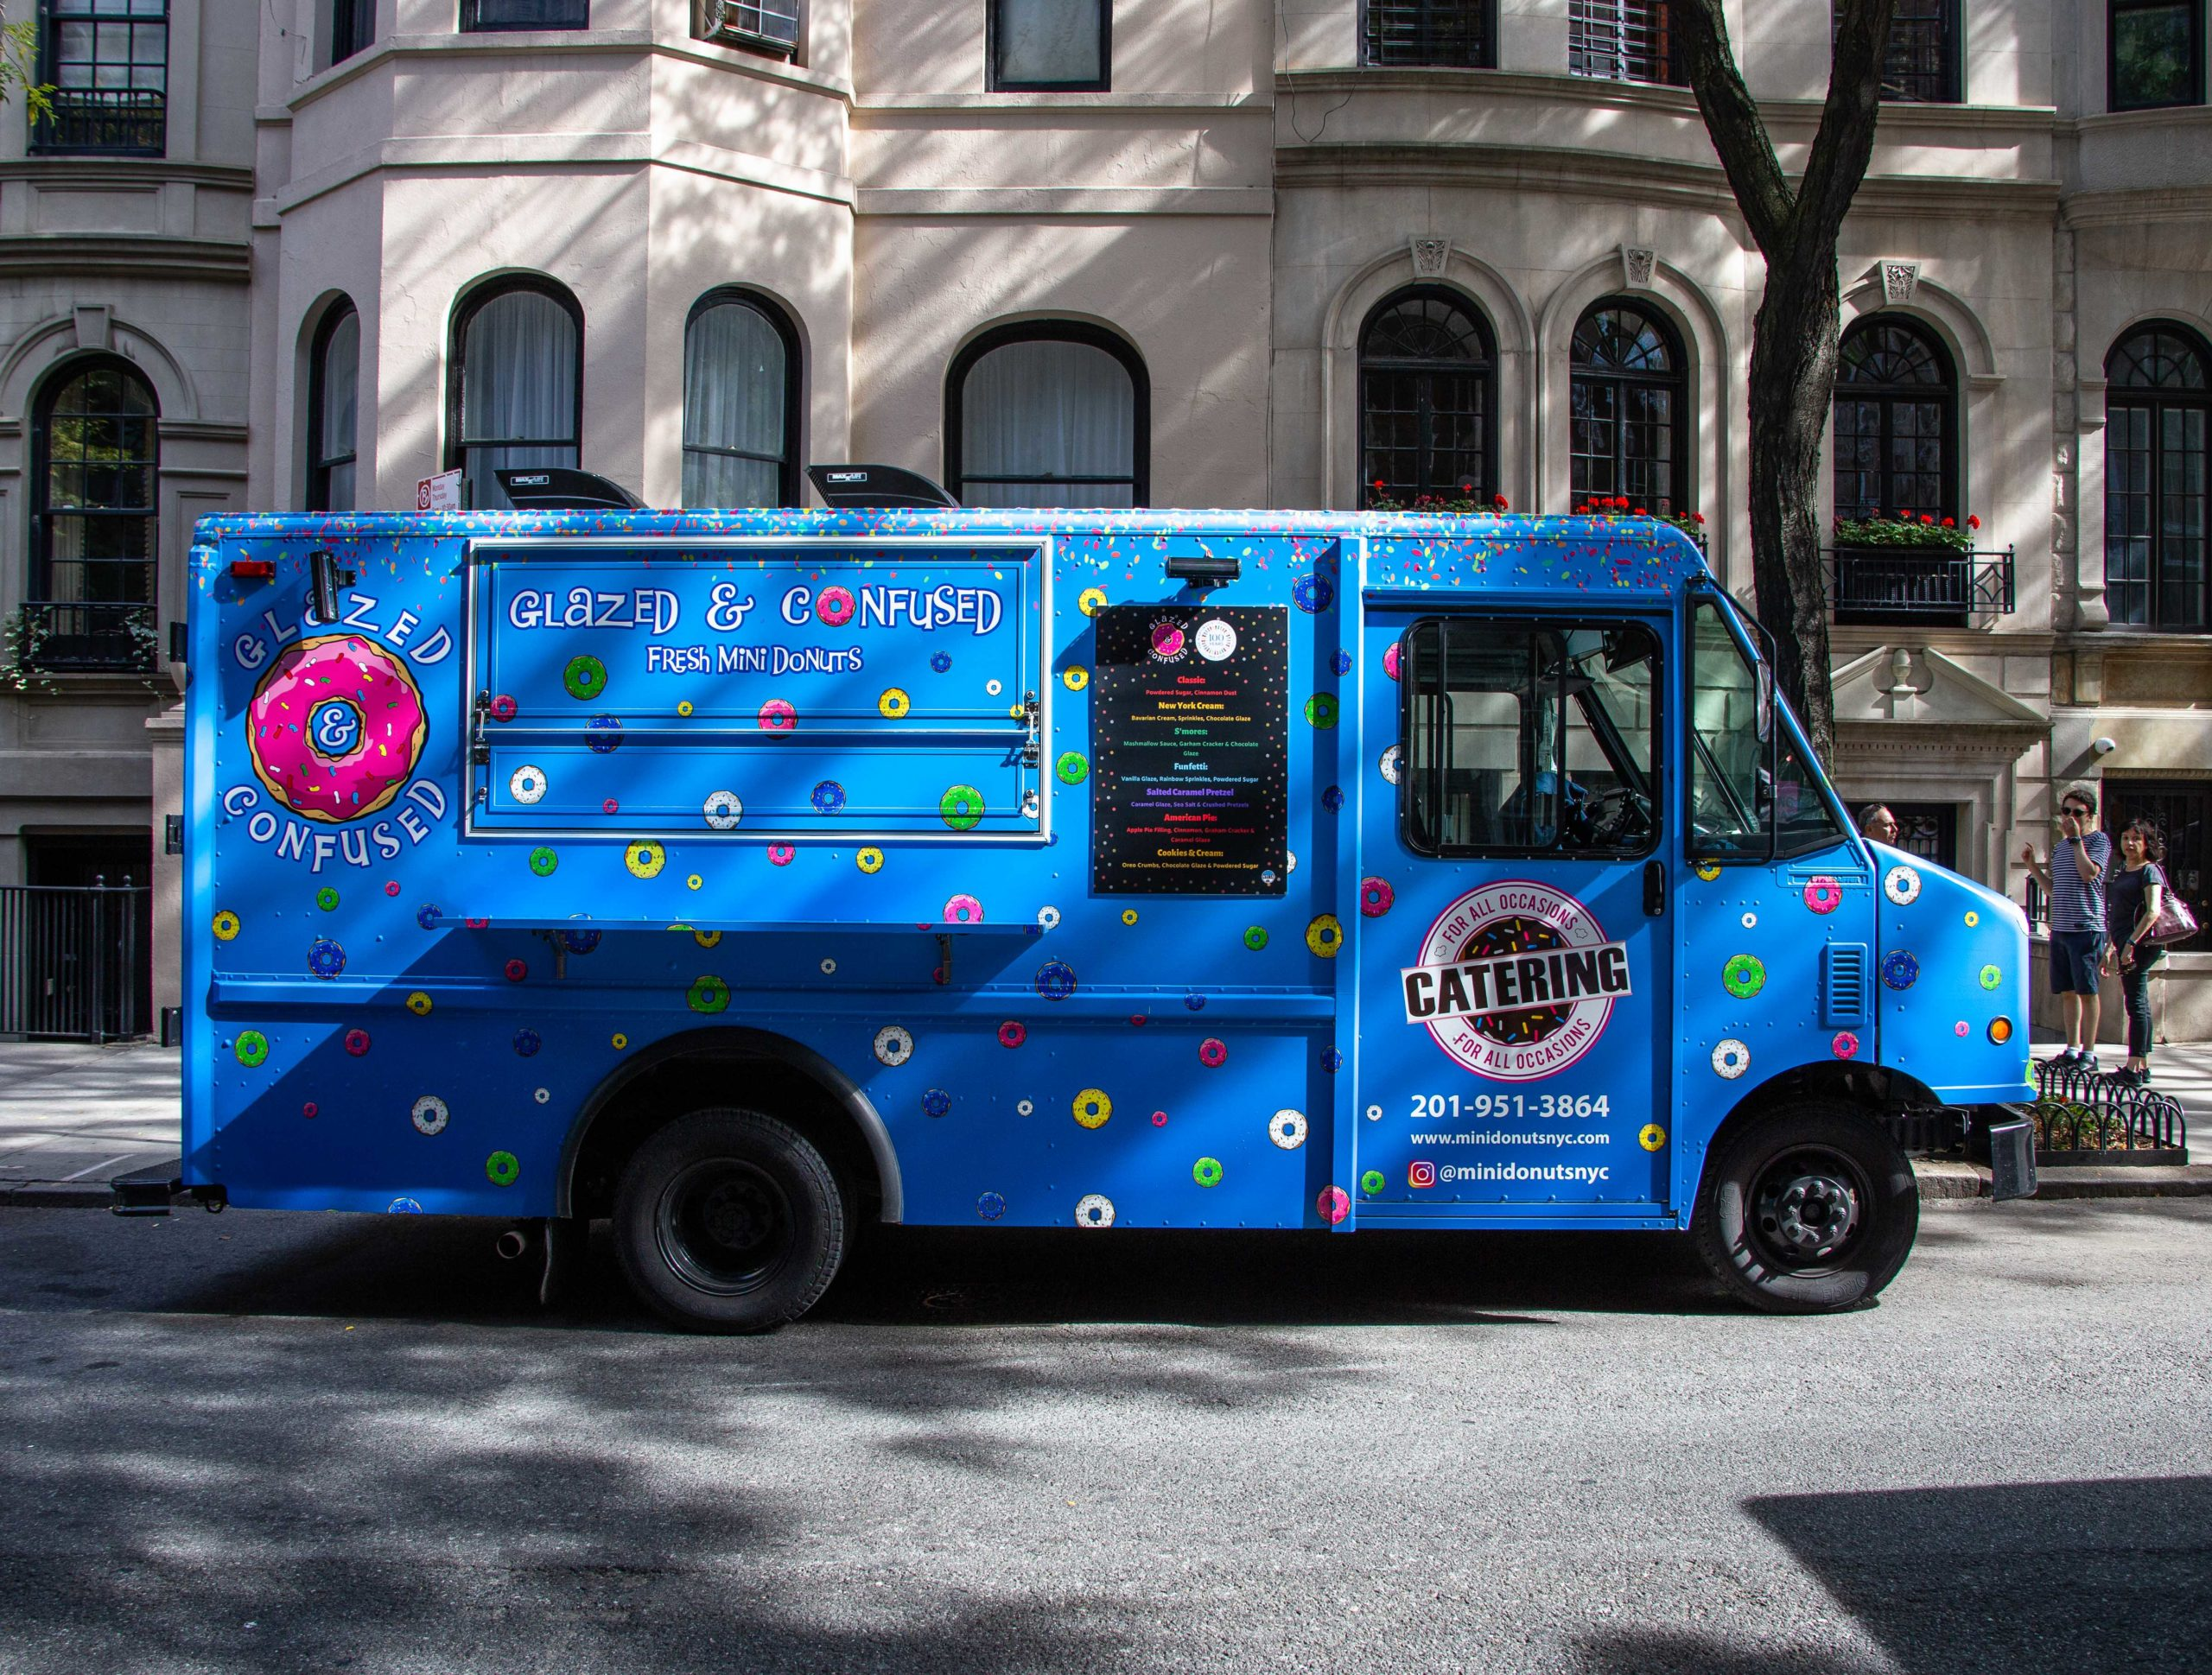 Rent Glazed and Confused for dessert catering in NYC